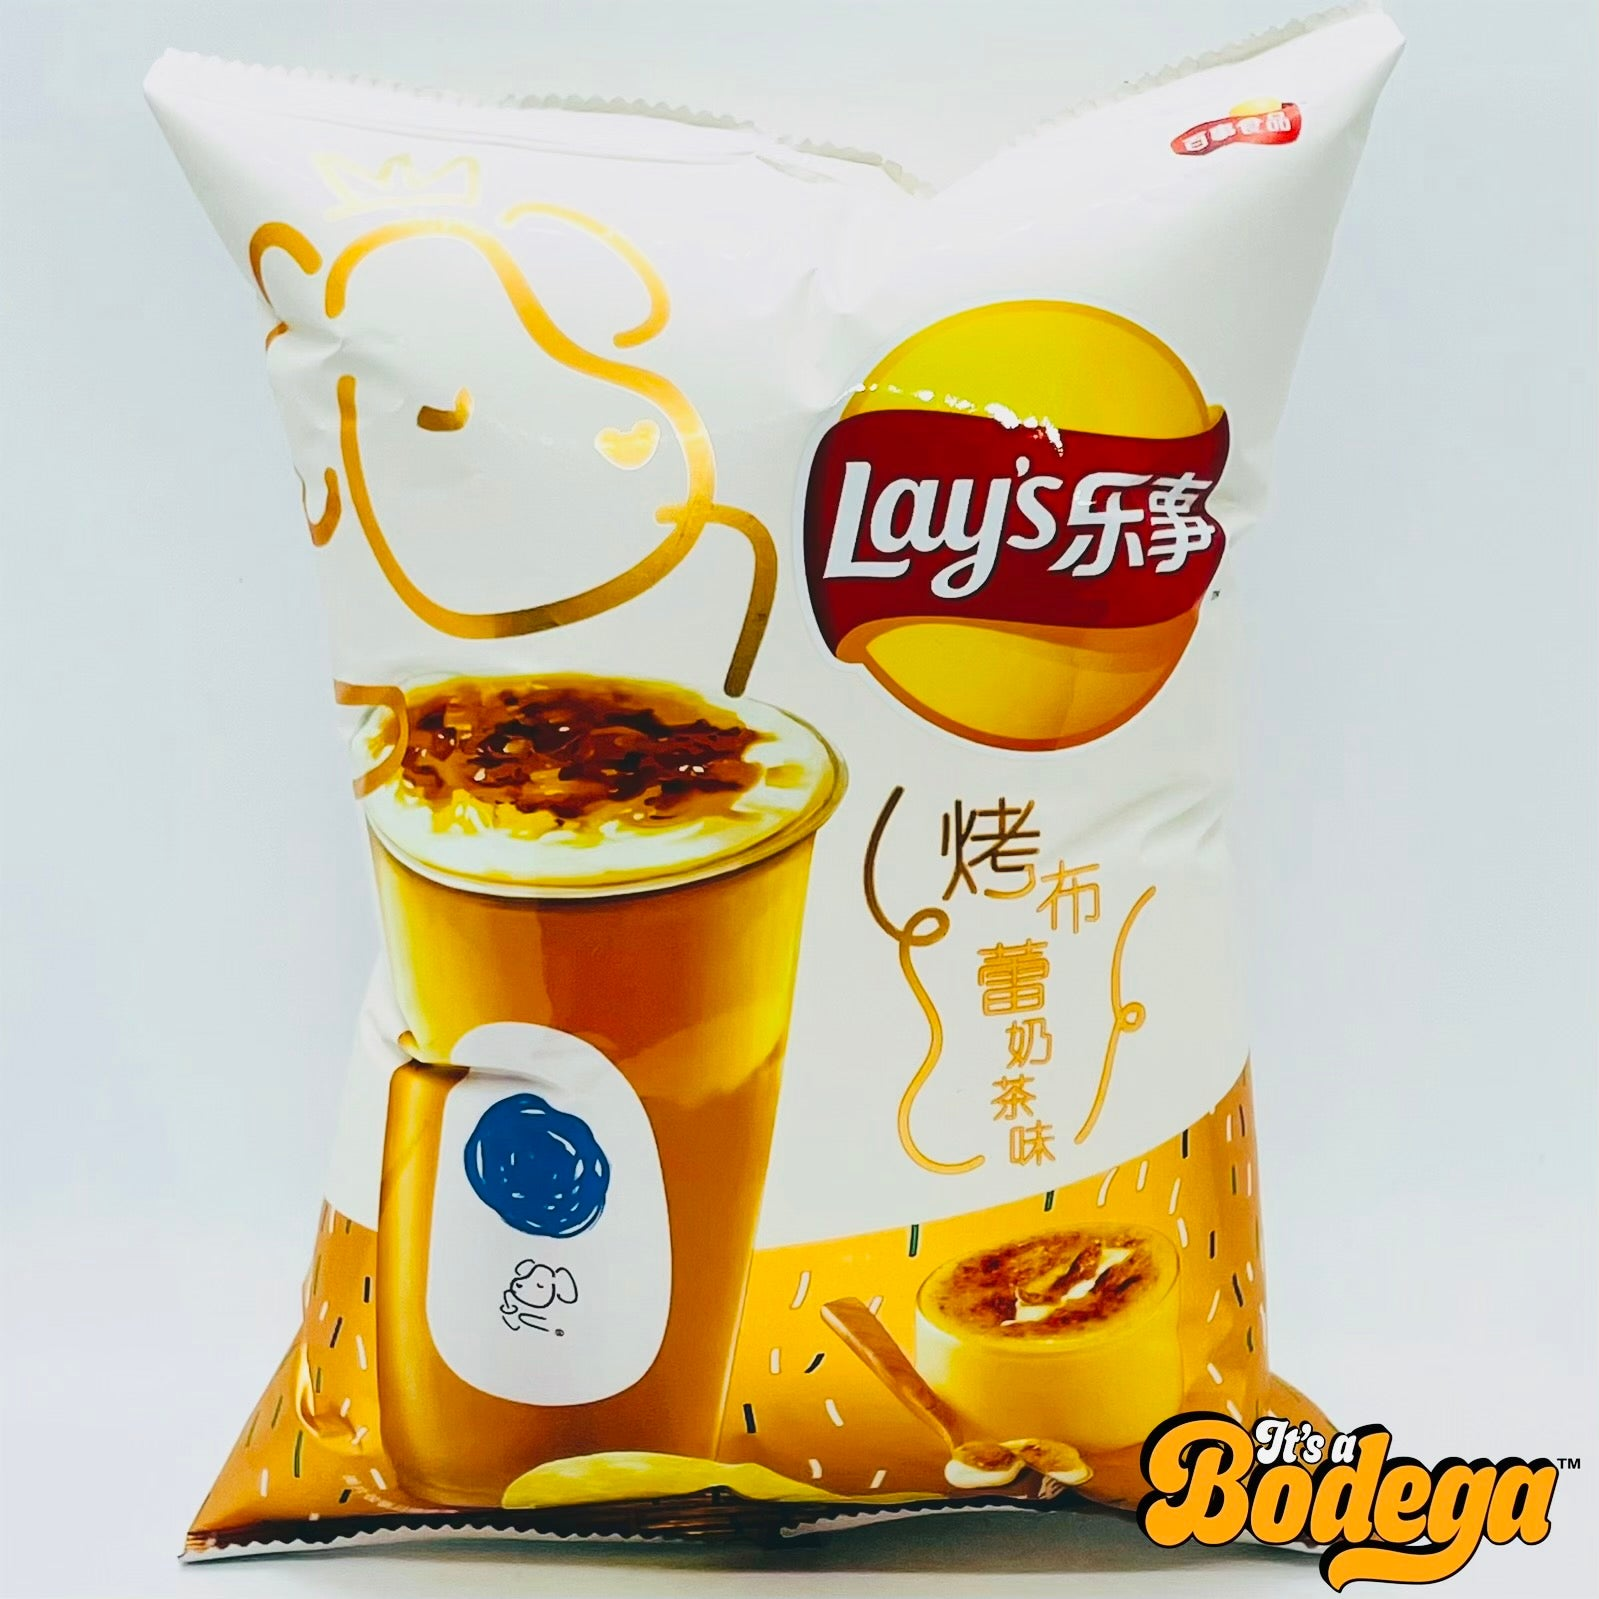 Lay's Roasted Creme Brûlée (Taiwan)